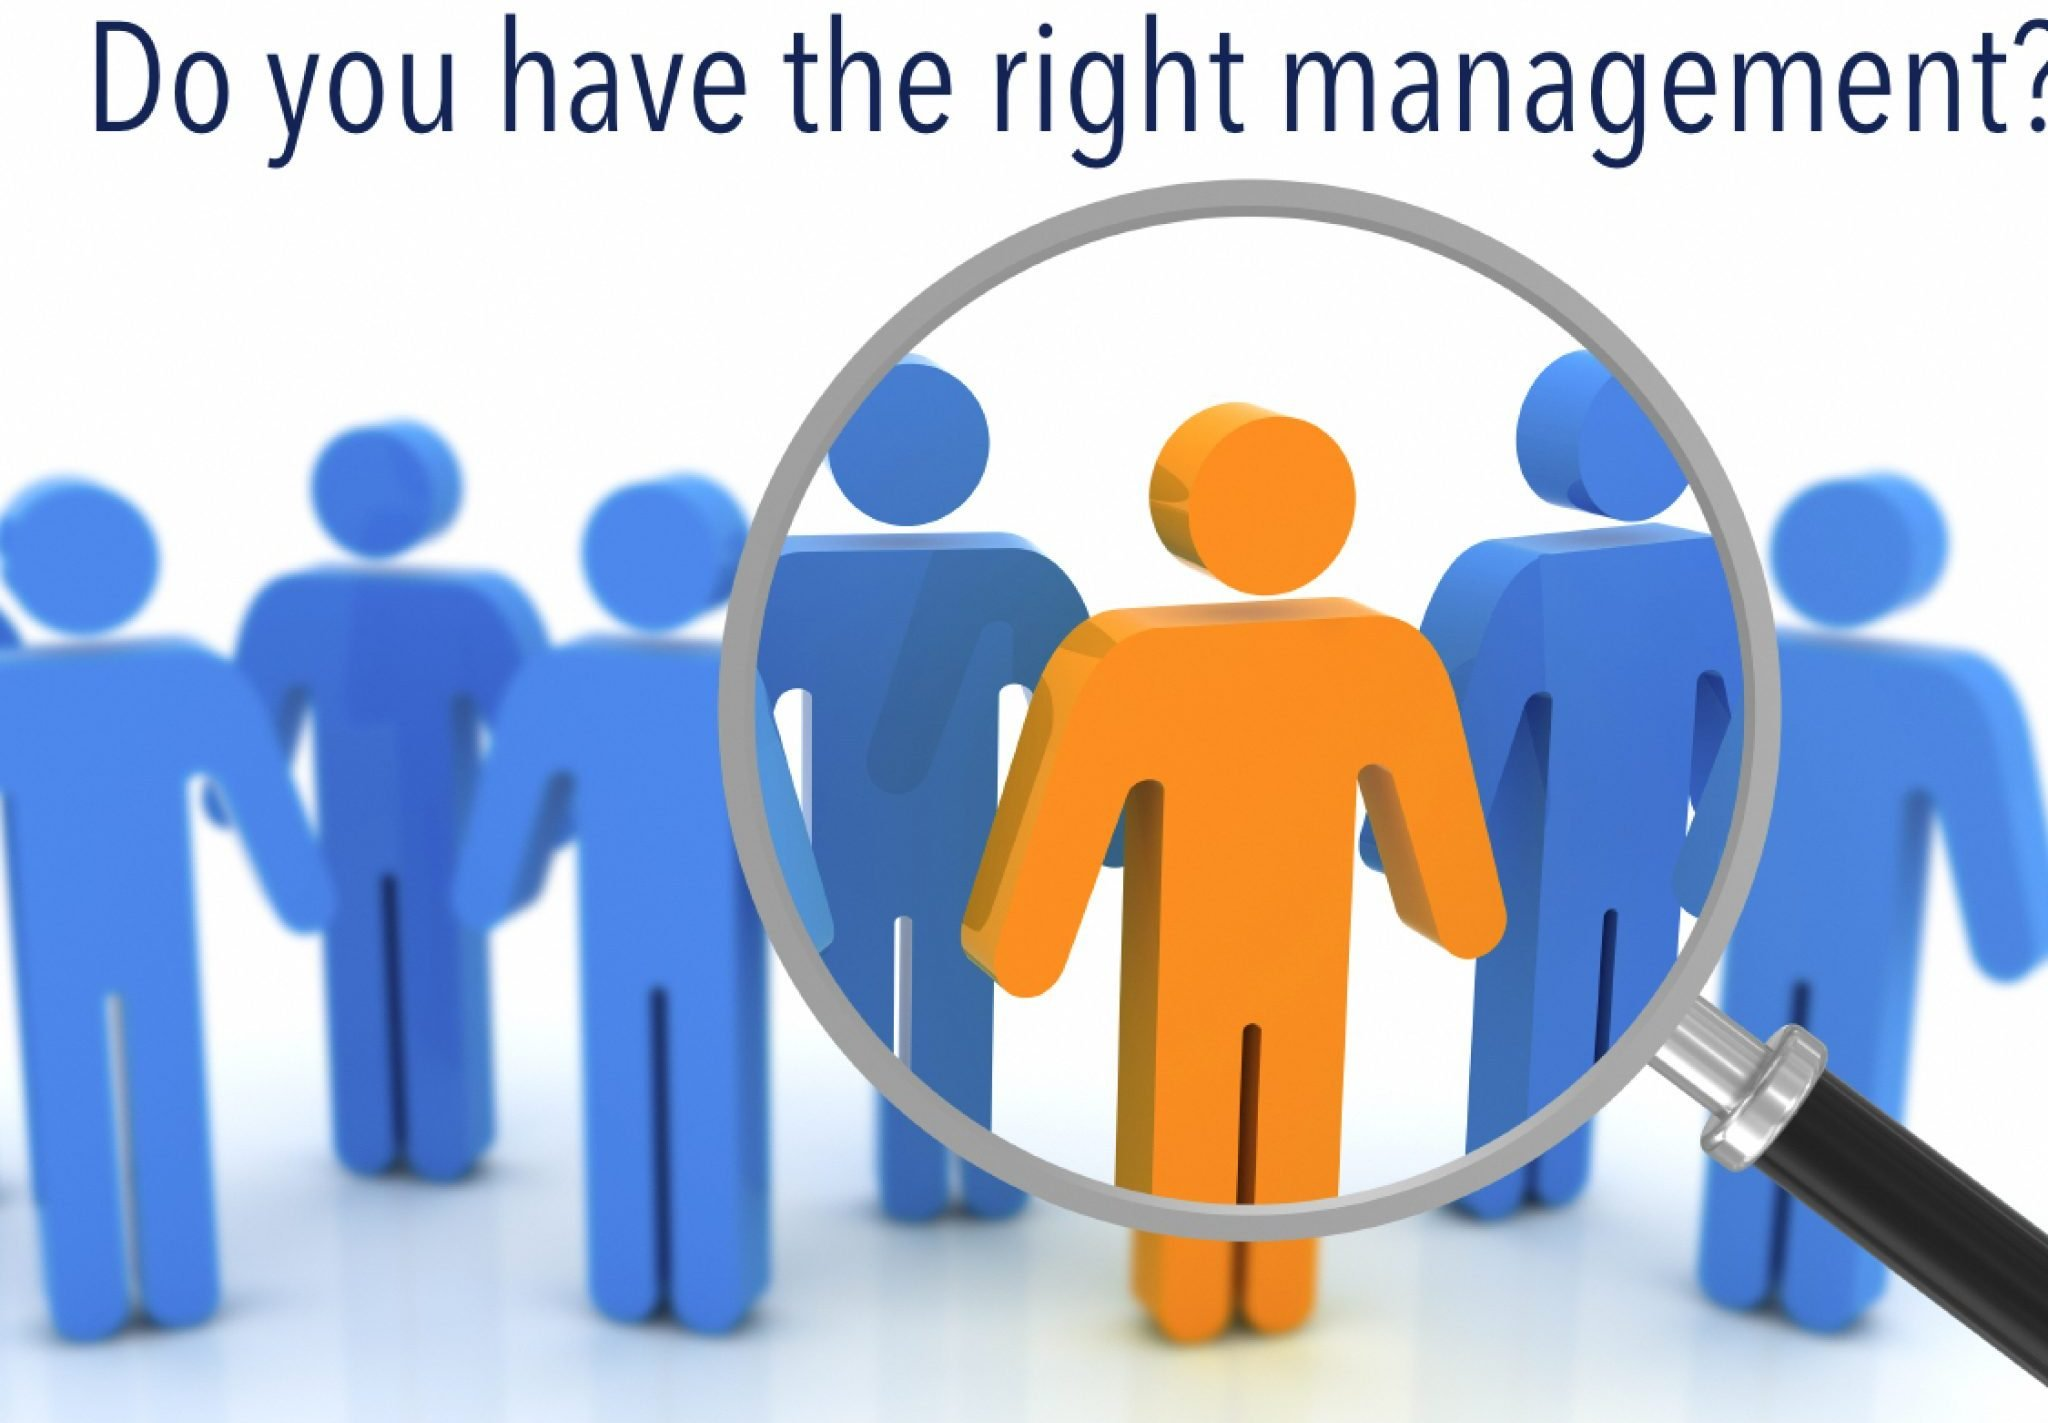 Employee Engagement: Do you have the right management?